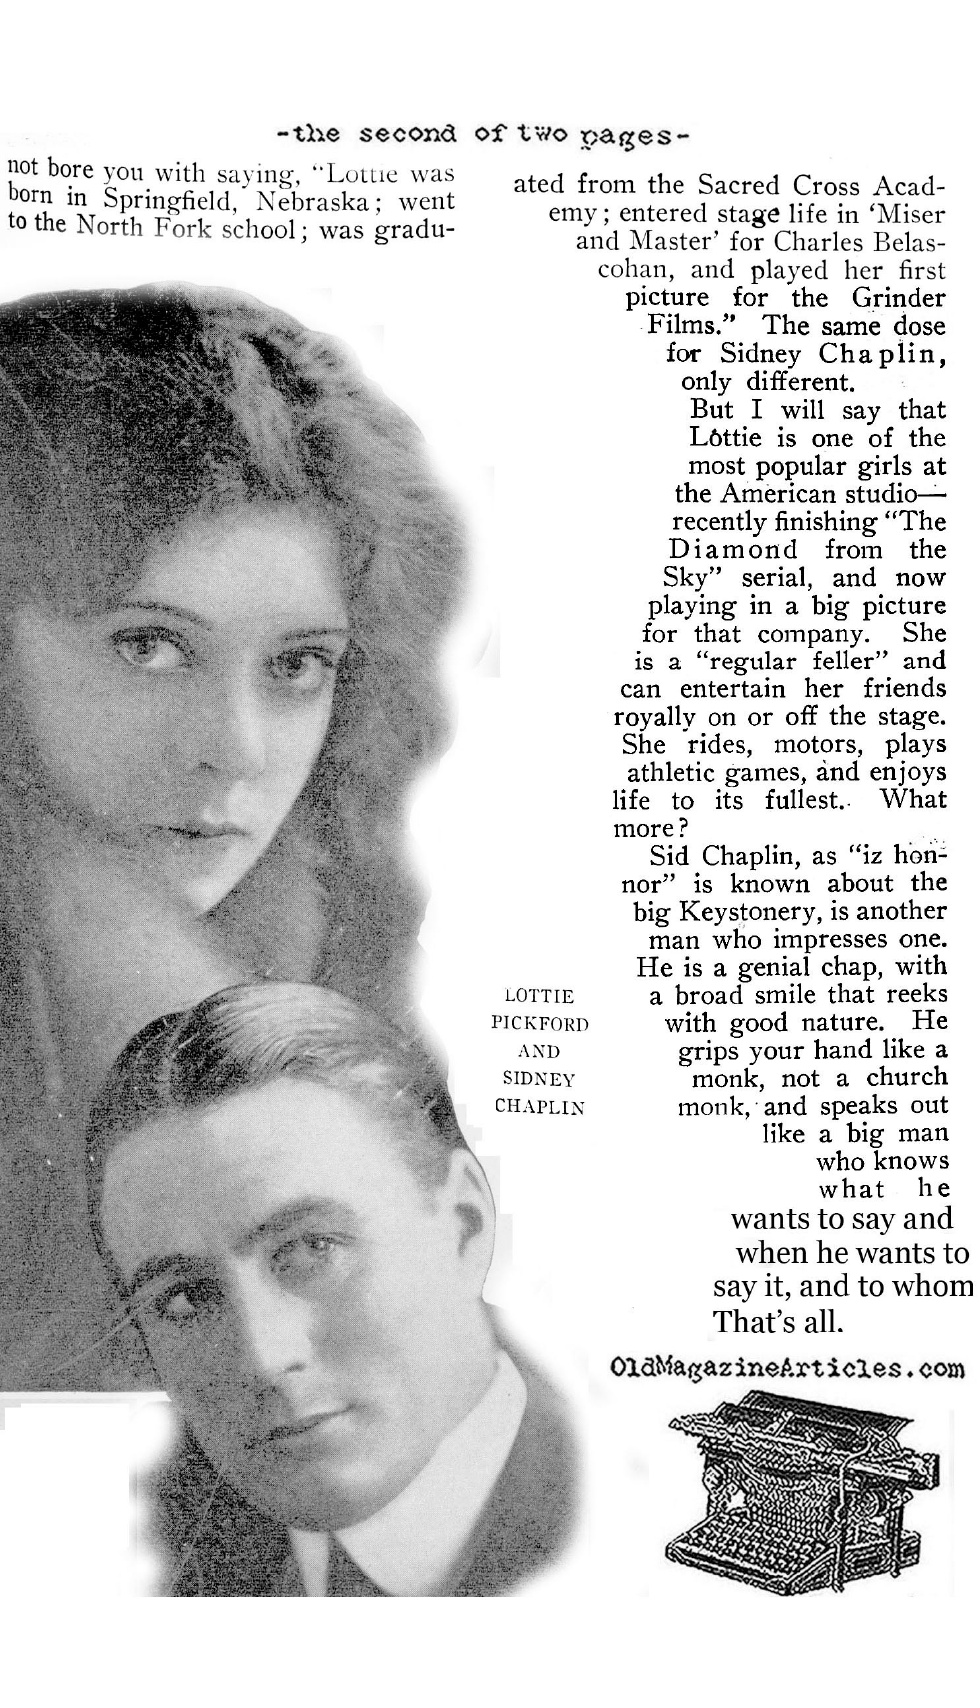 Charlie Chaplin's Brother (Motion Pictur Magazine, 1916)